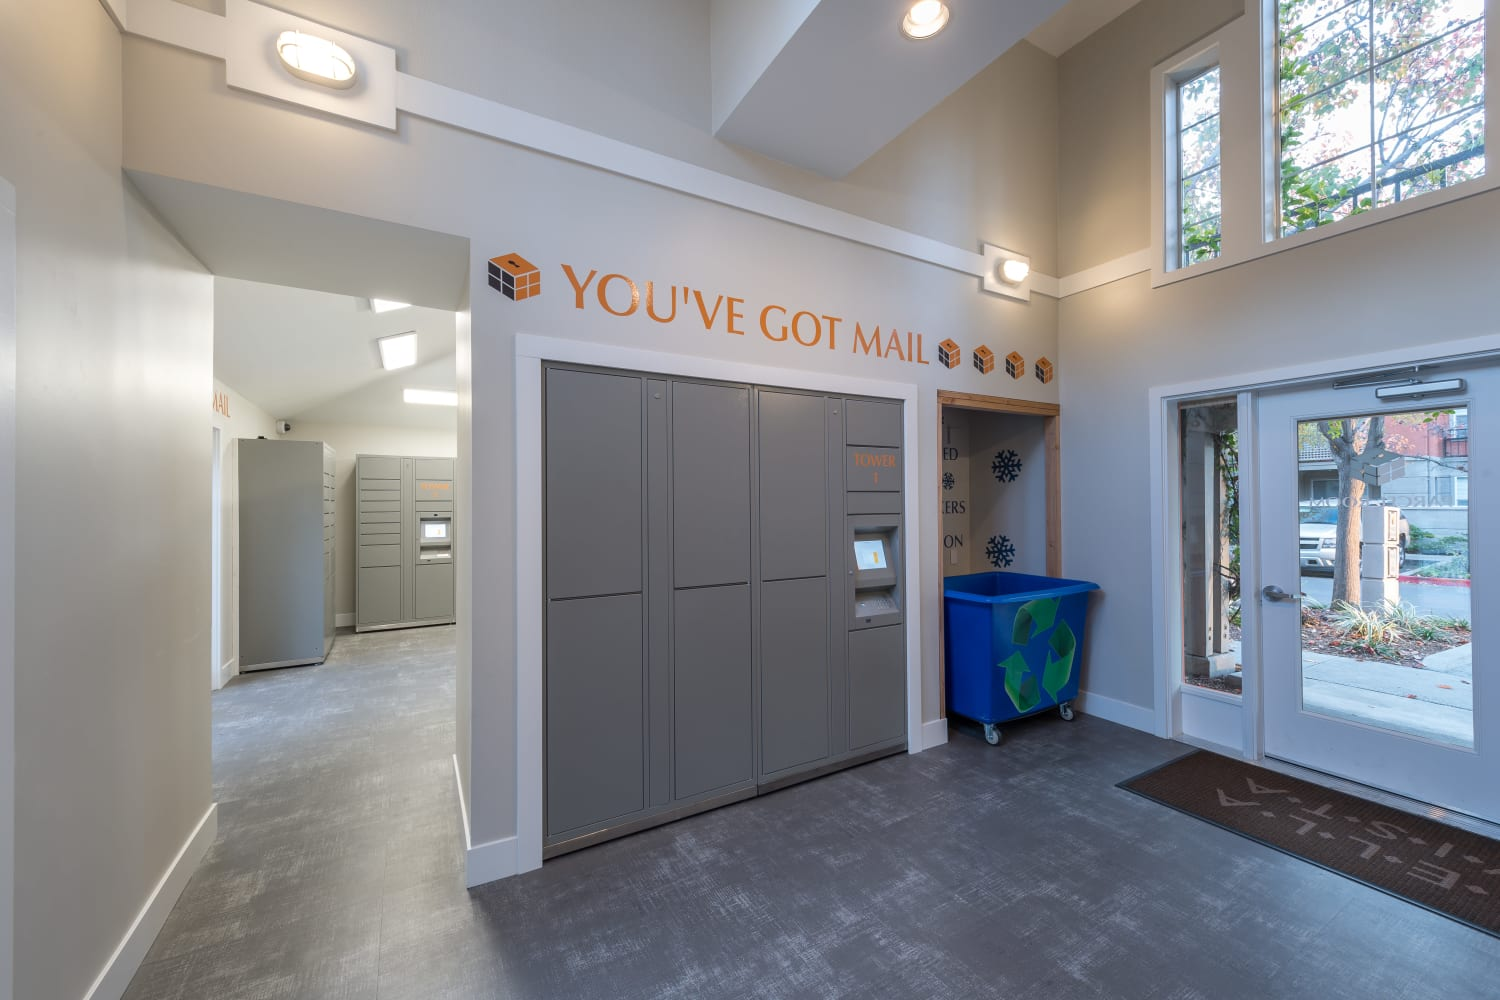 Bella Vista Apartments offers a parcel room in Santa Clara, California